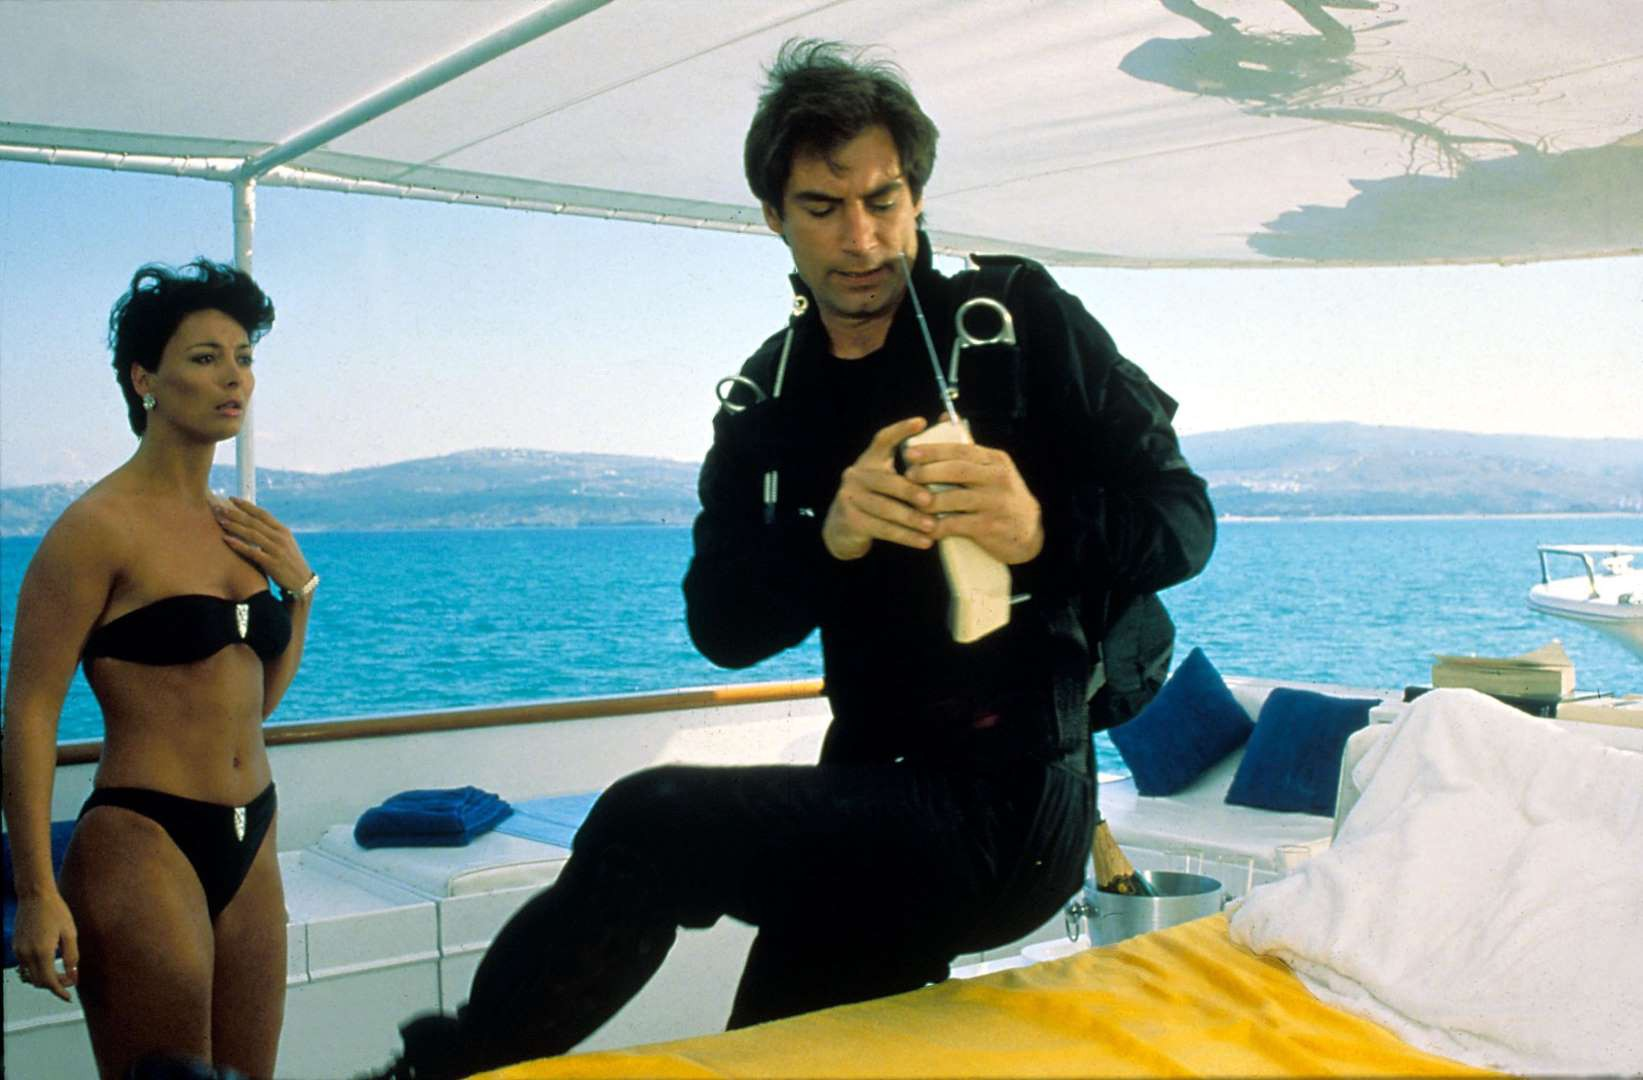 Still image from the movie The Living Daylights, where Bond meets a bikini-clad woman.